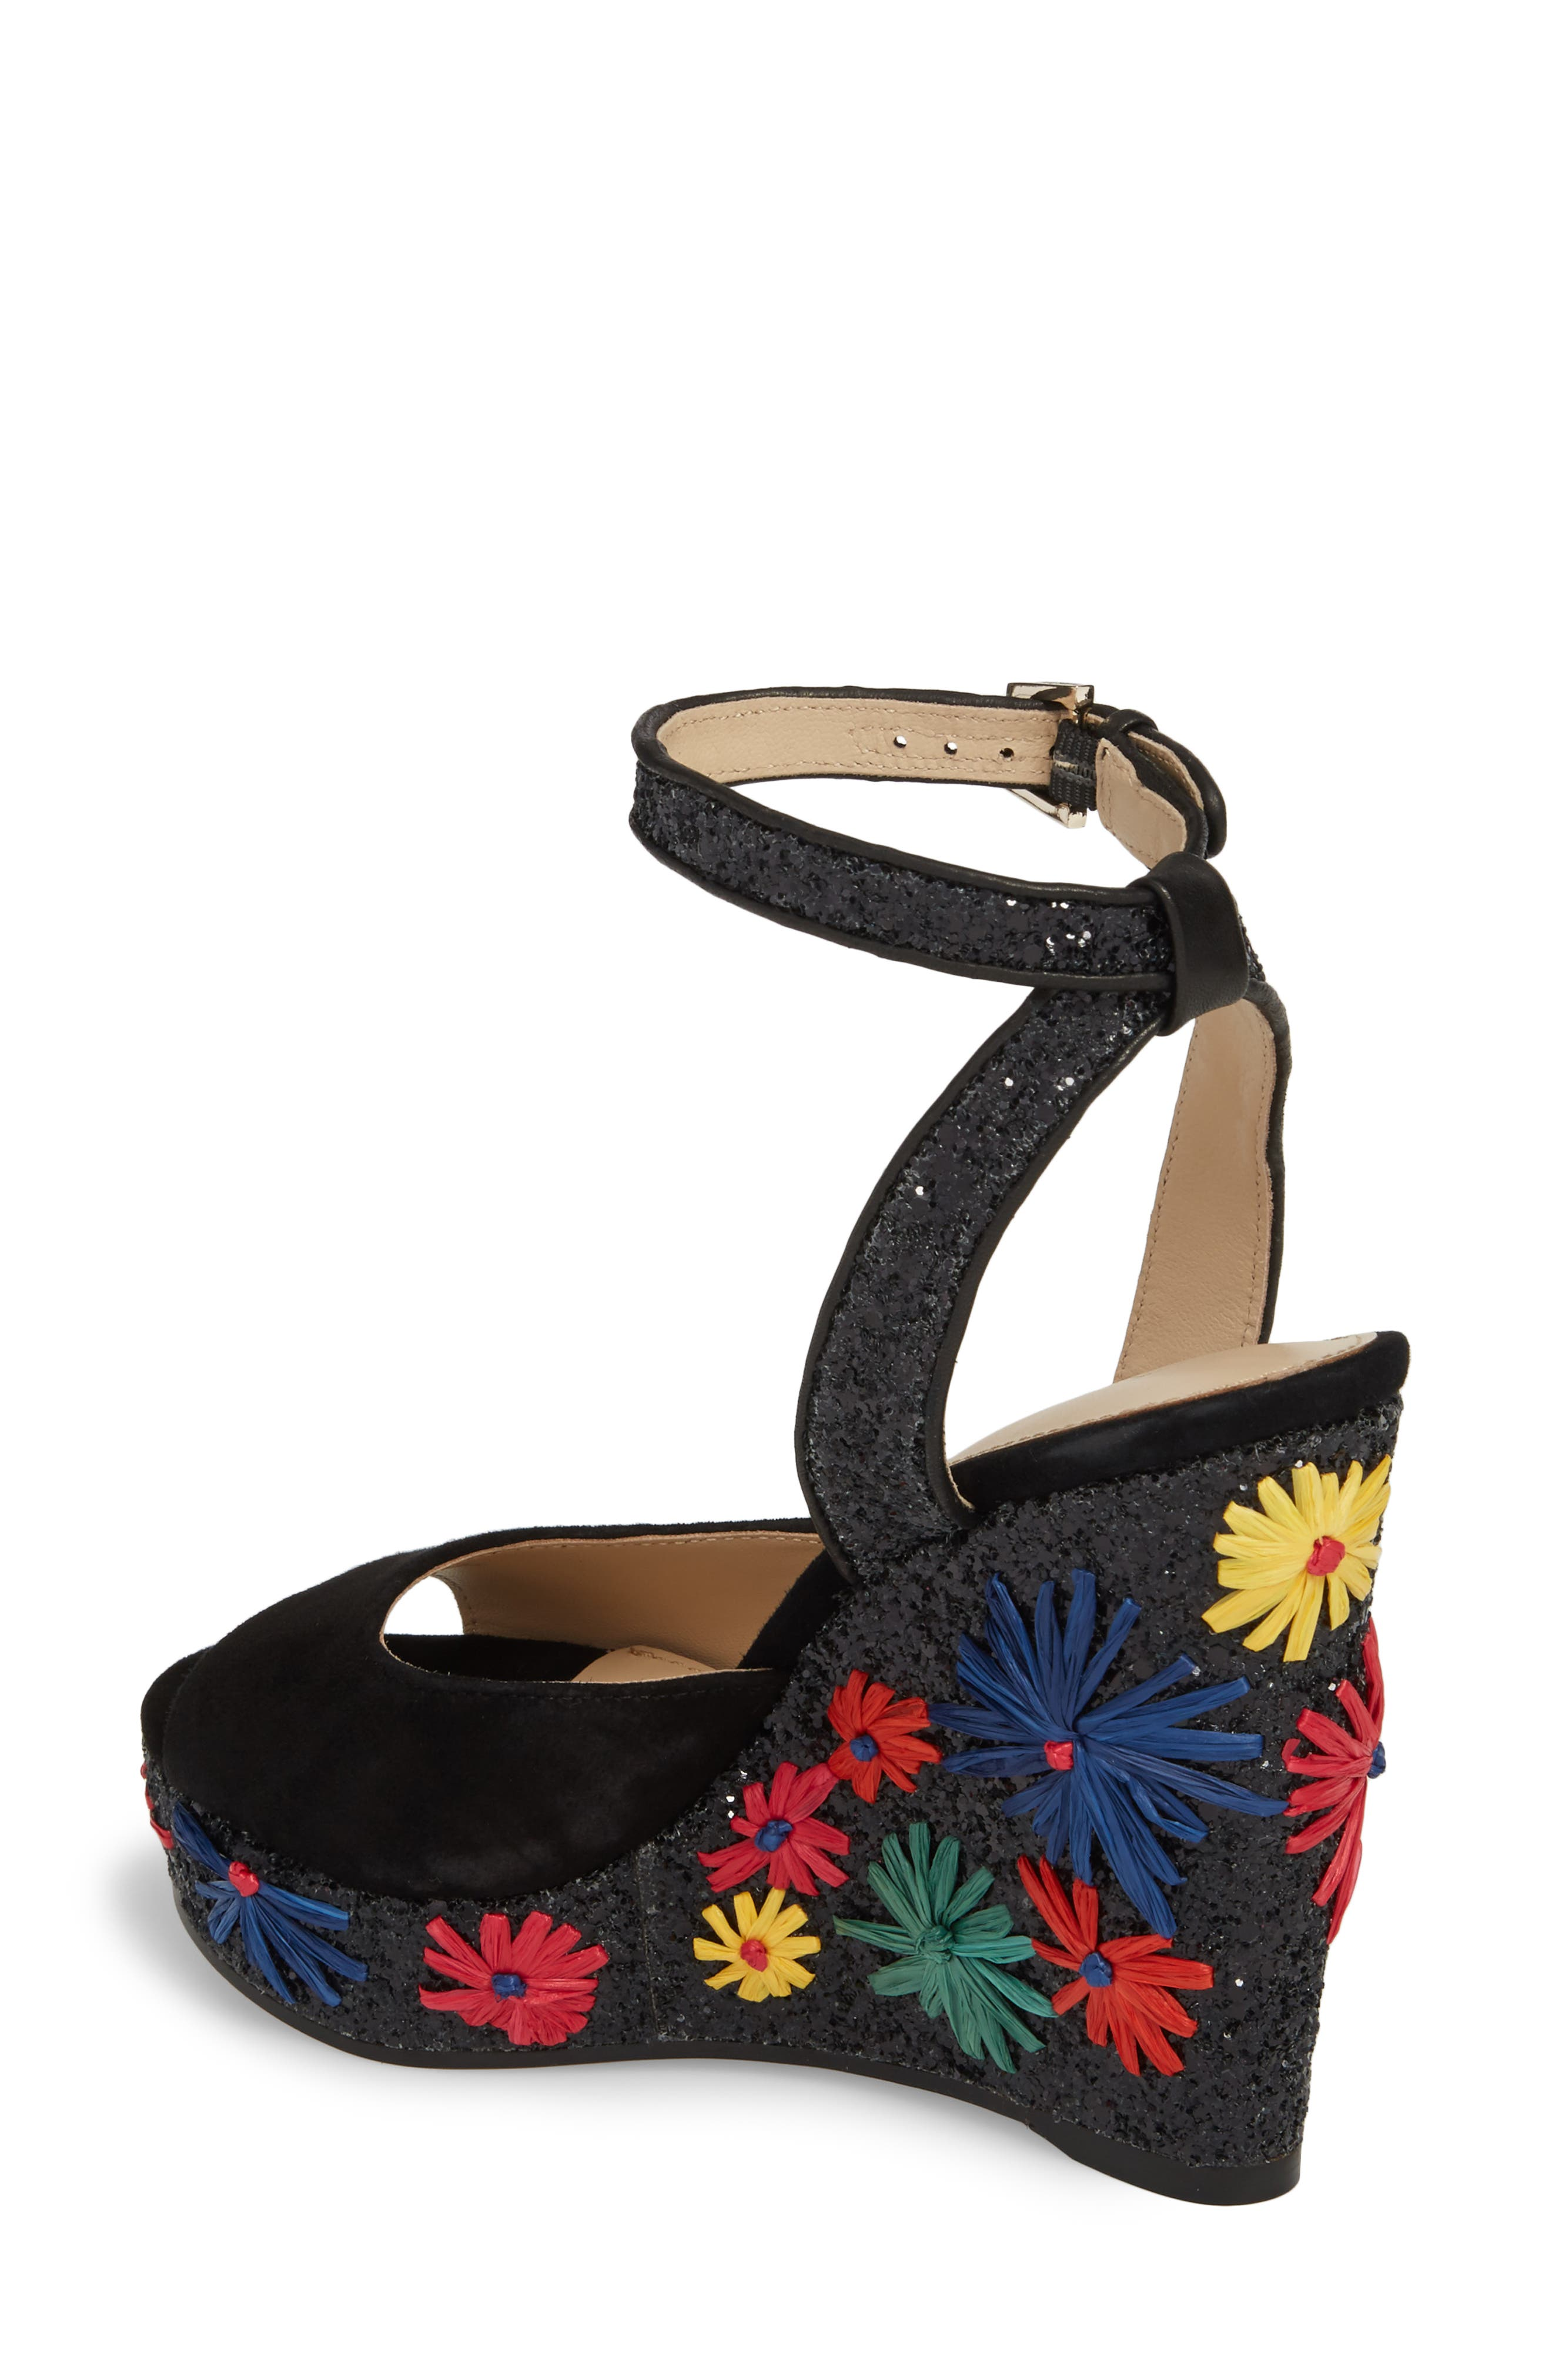 Jessie Wedge Sandal,                             Alternate thumbnail 2, color,                             BRIGHT FLORAL LEATHER